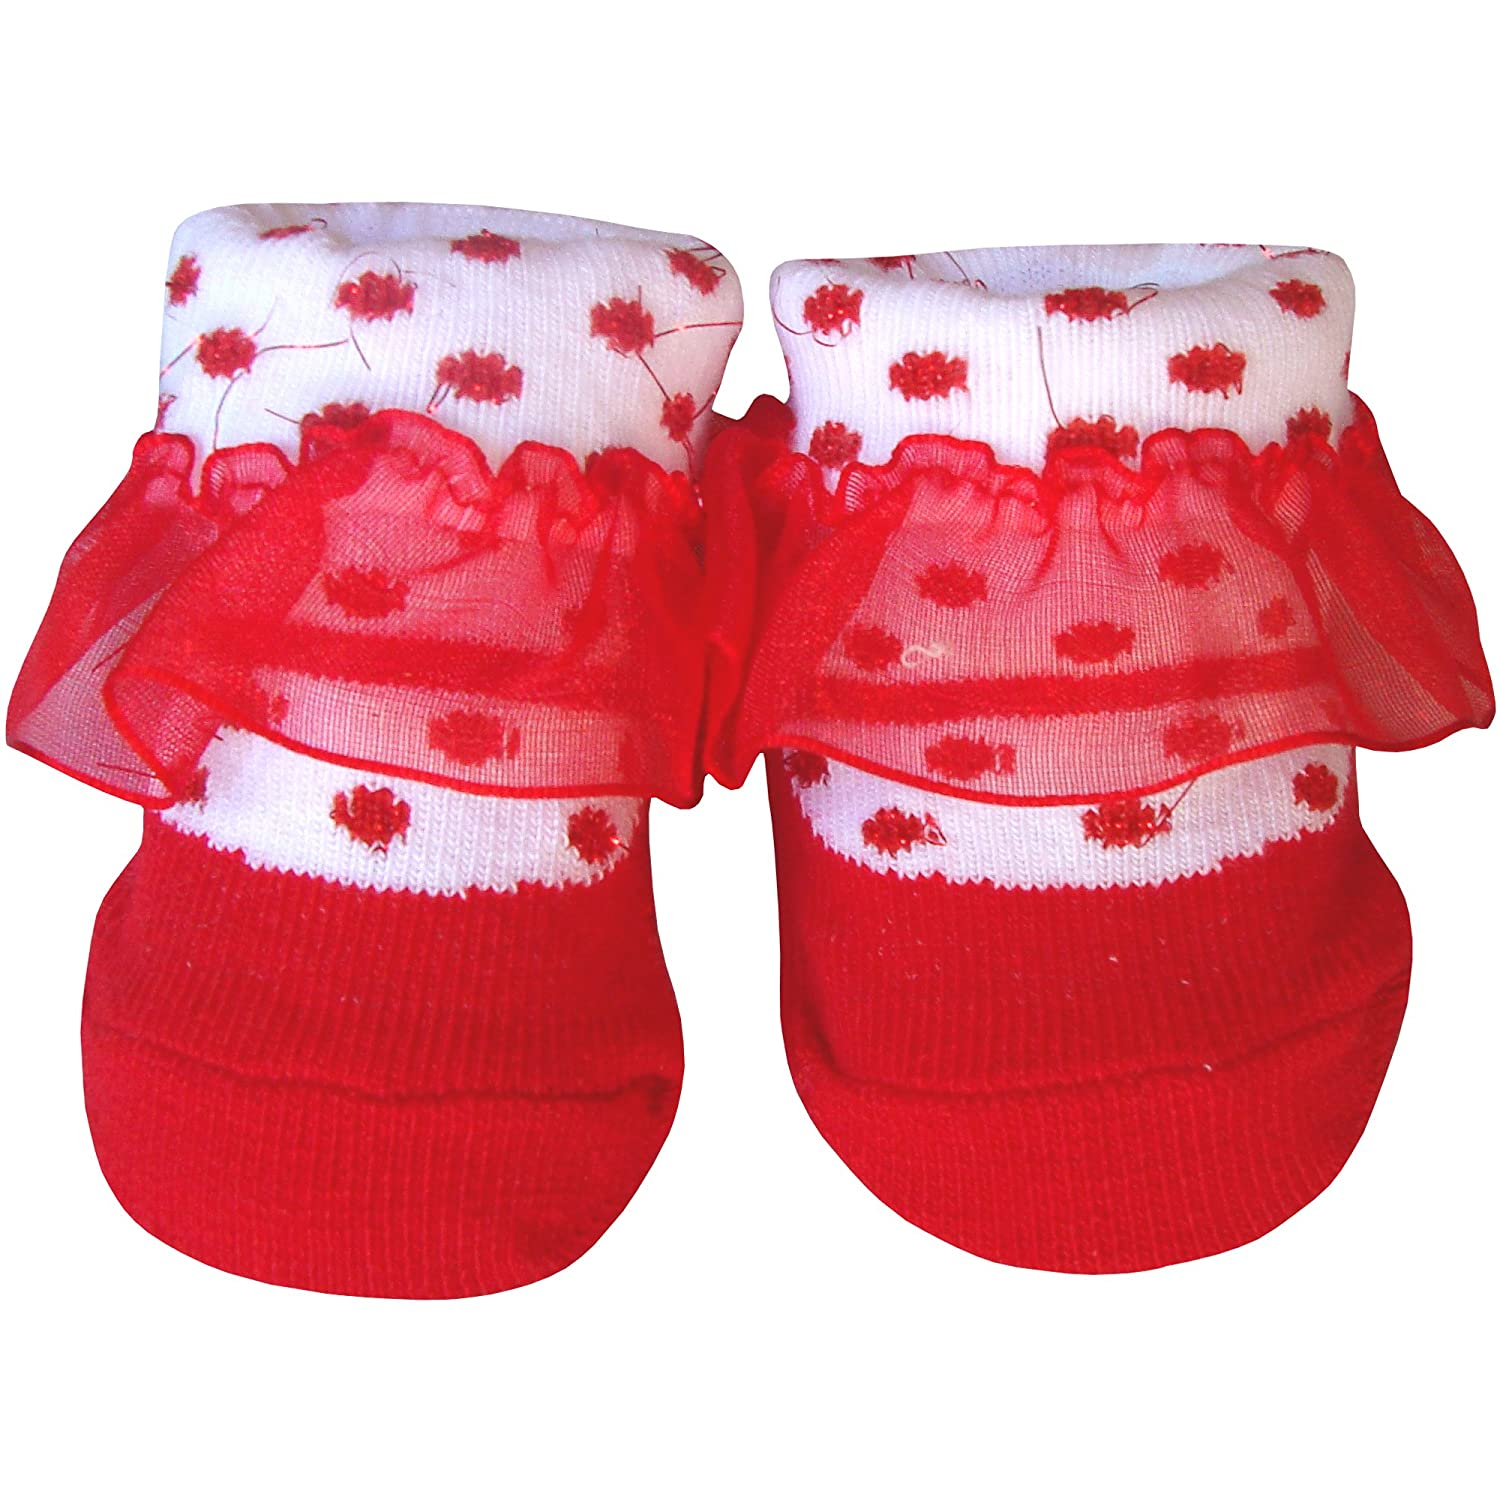 Baby Christmas Socks (Polka Dot Party Lace) Gigglewinks